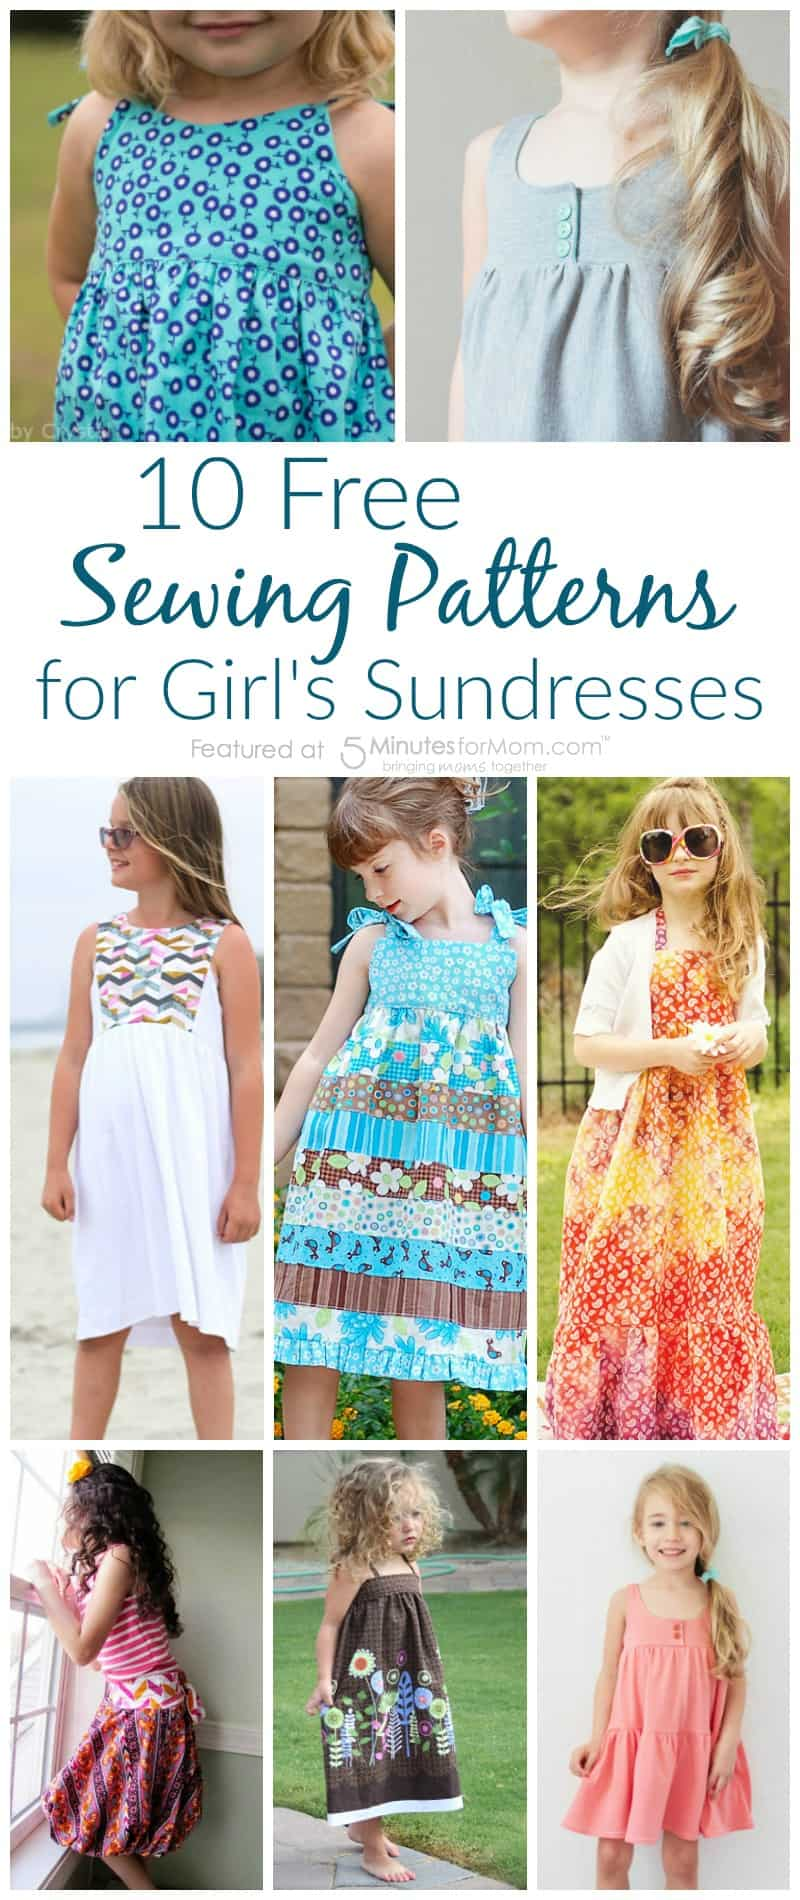 10 free sewing patterns for girls sundresses 5 minutes for mom 10 free sewing patterns for girls sundresses jeuxipadfo Images